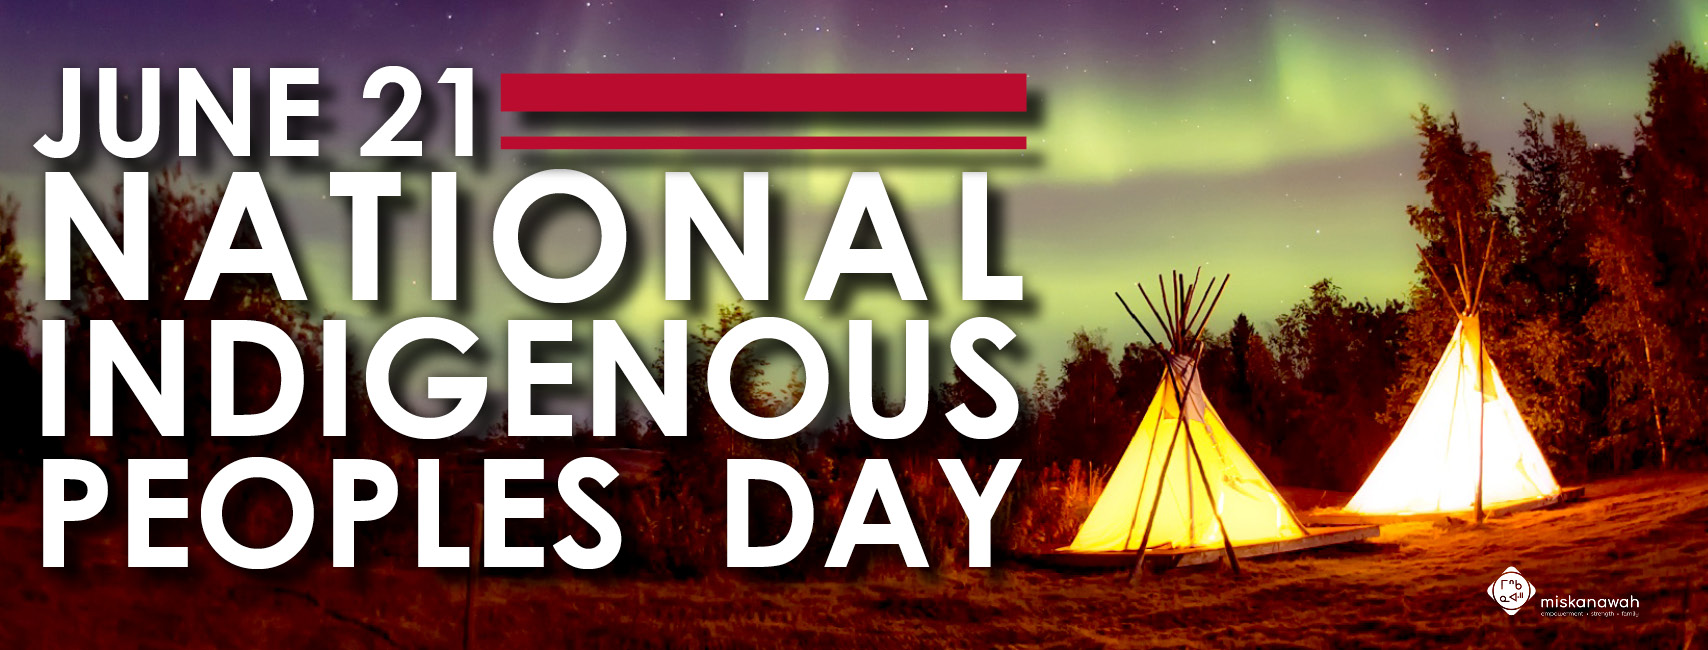 June 21 - National Indigenous Peoples Day